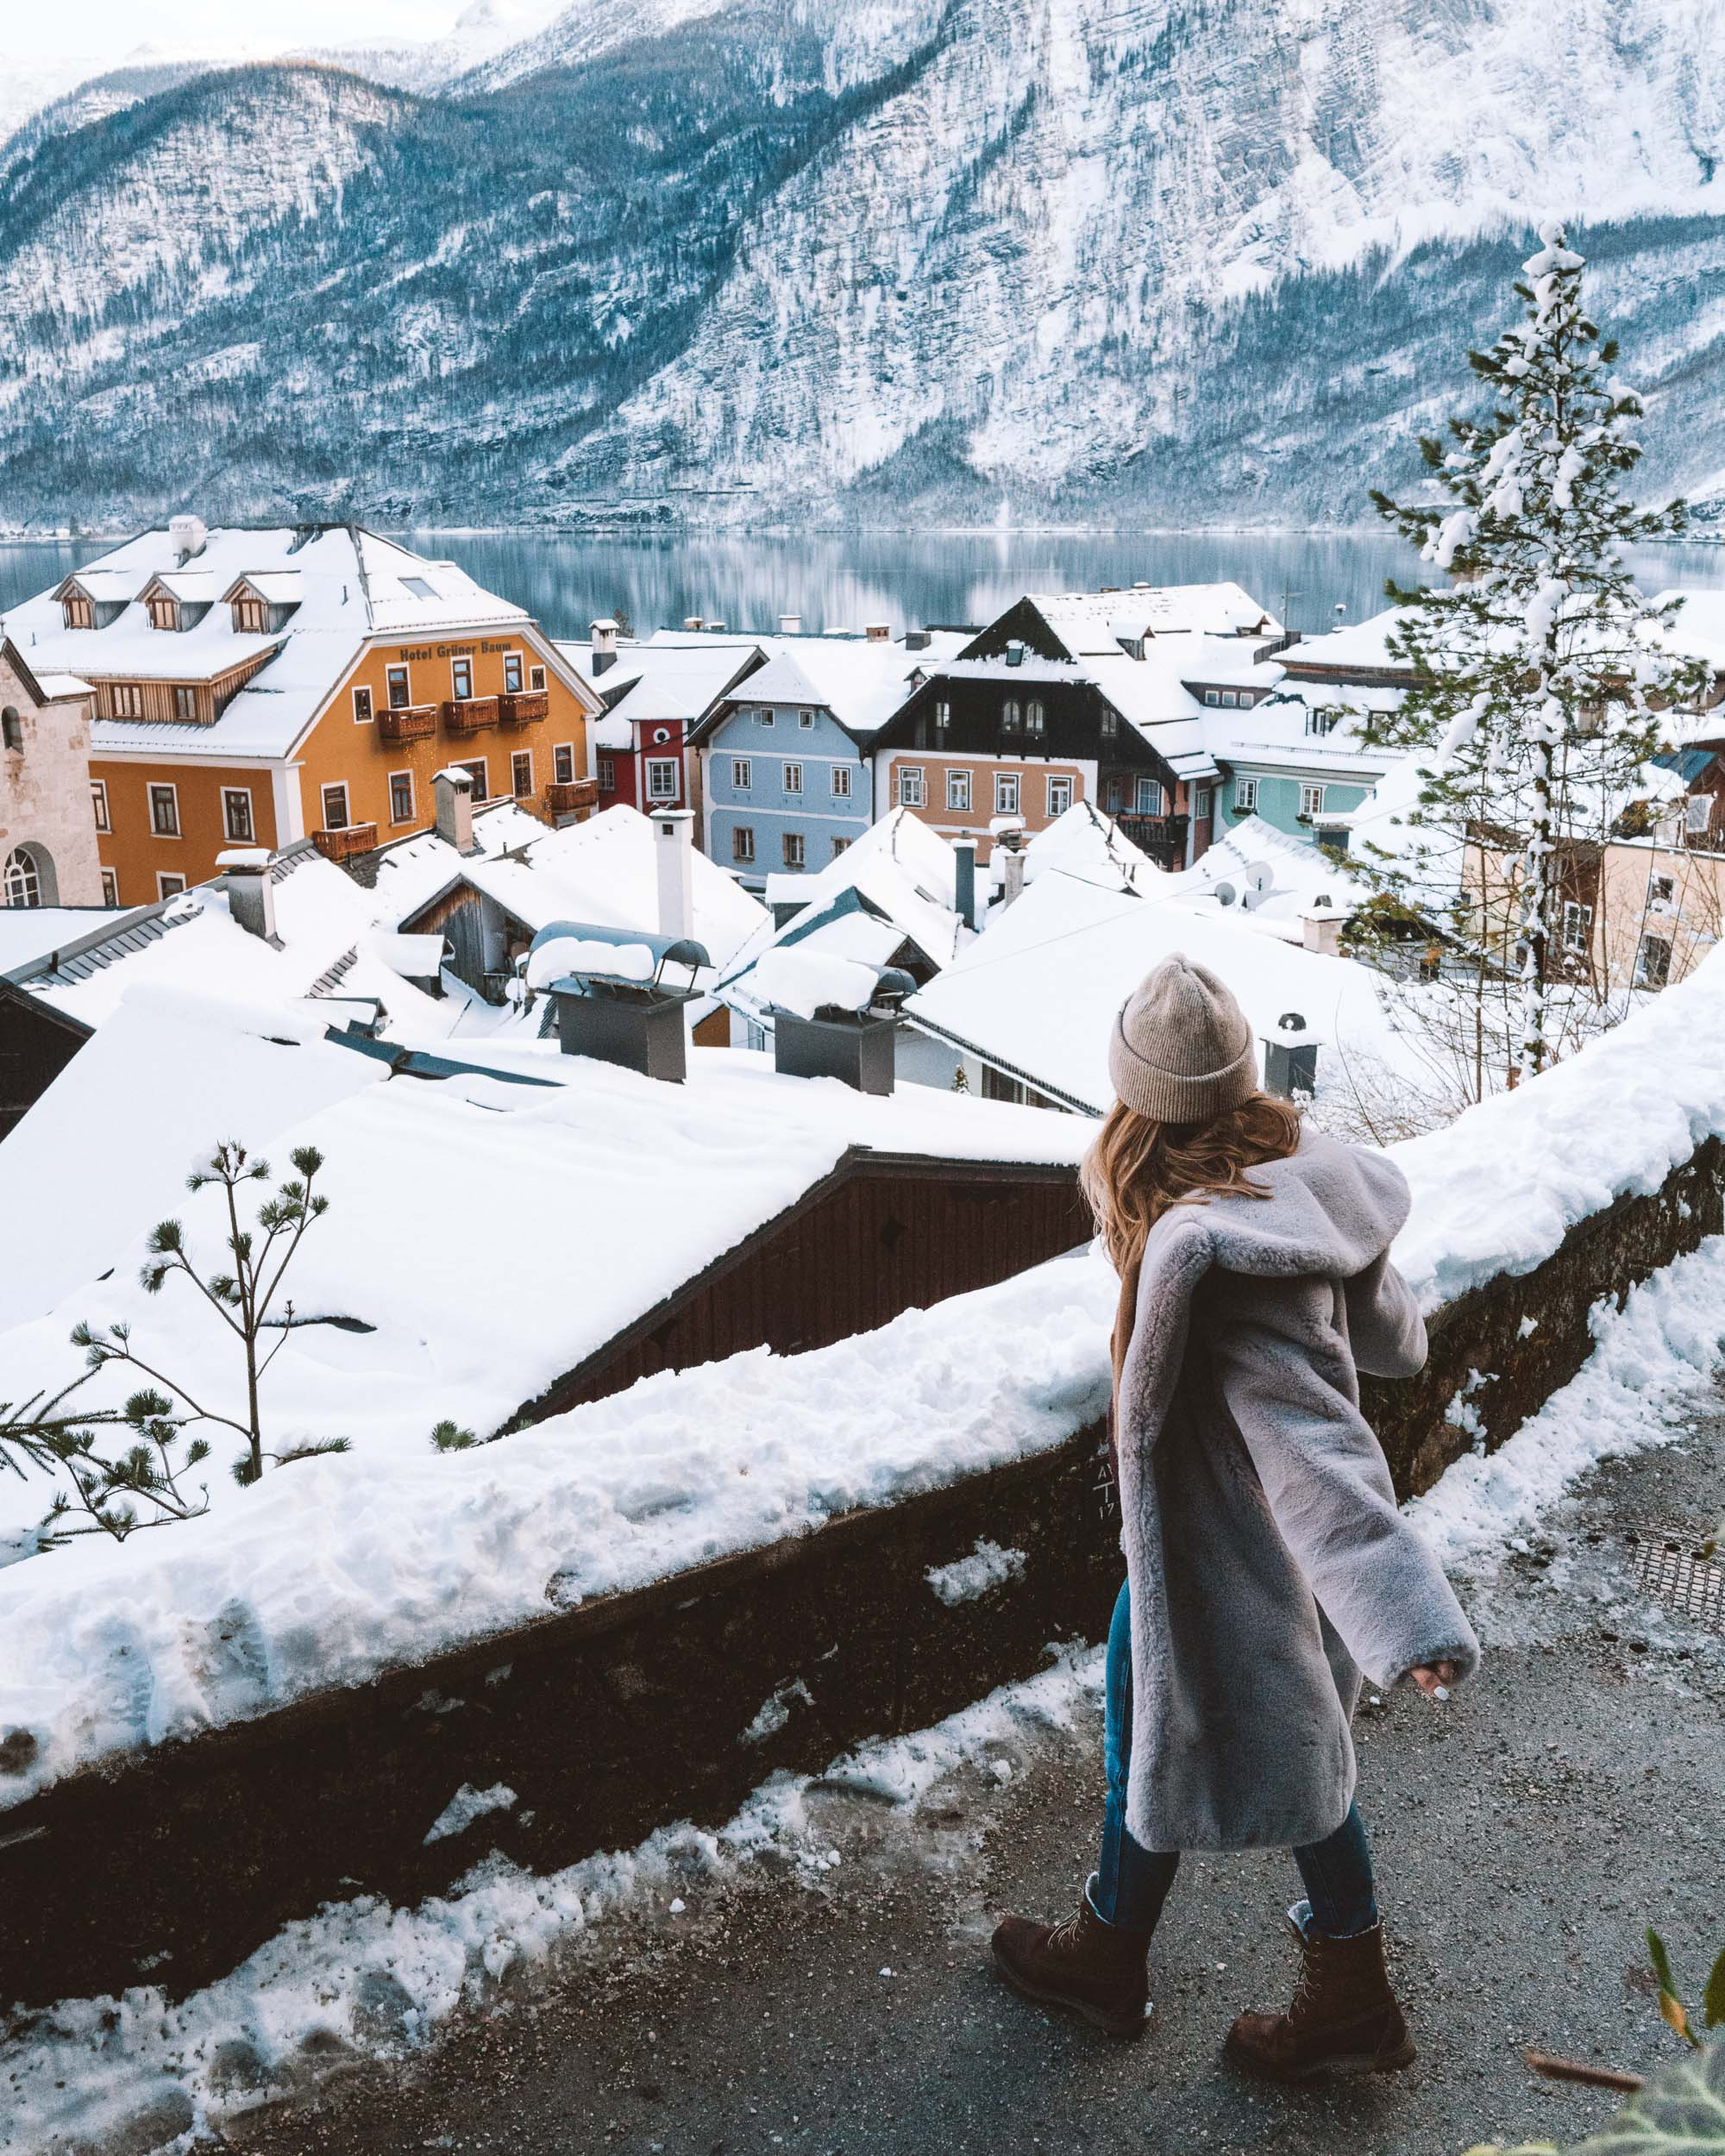 View of hallstatt austria snow covered rooftops from path up the mountain